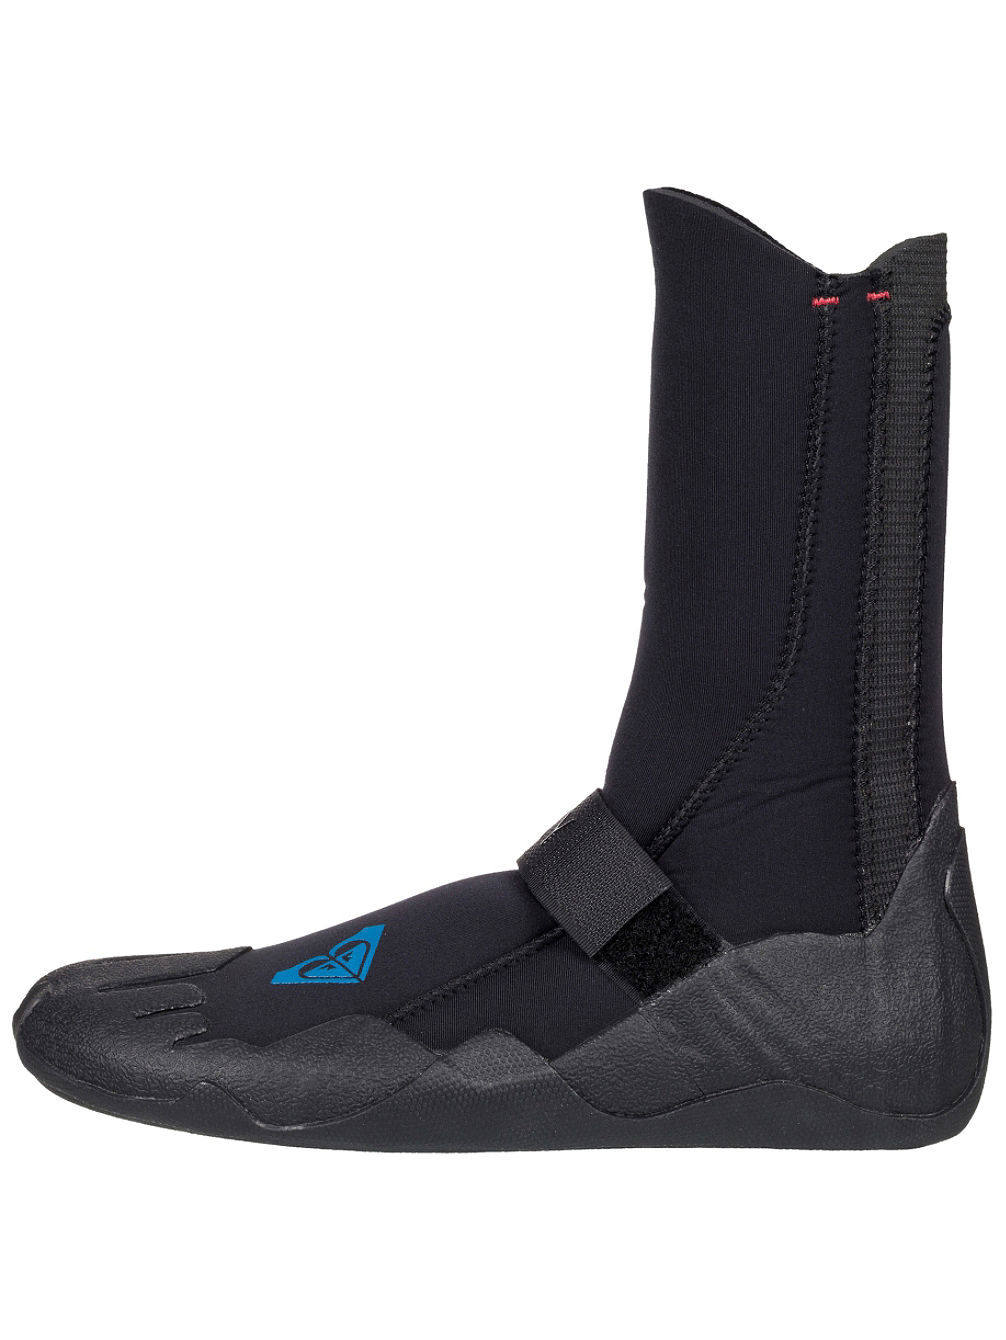 5.0 Syncro Round Toe Booties Women